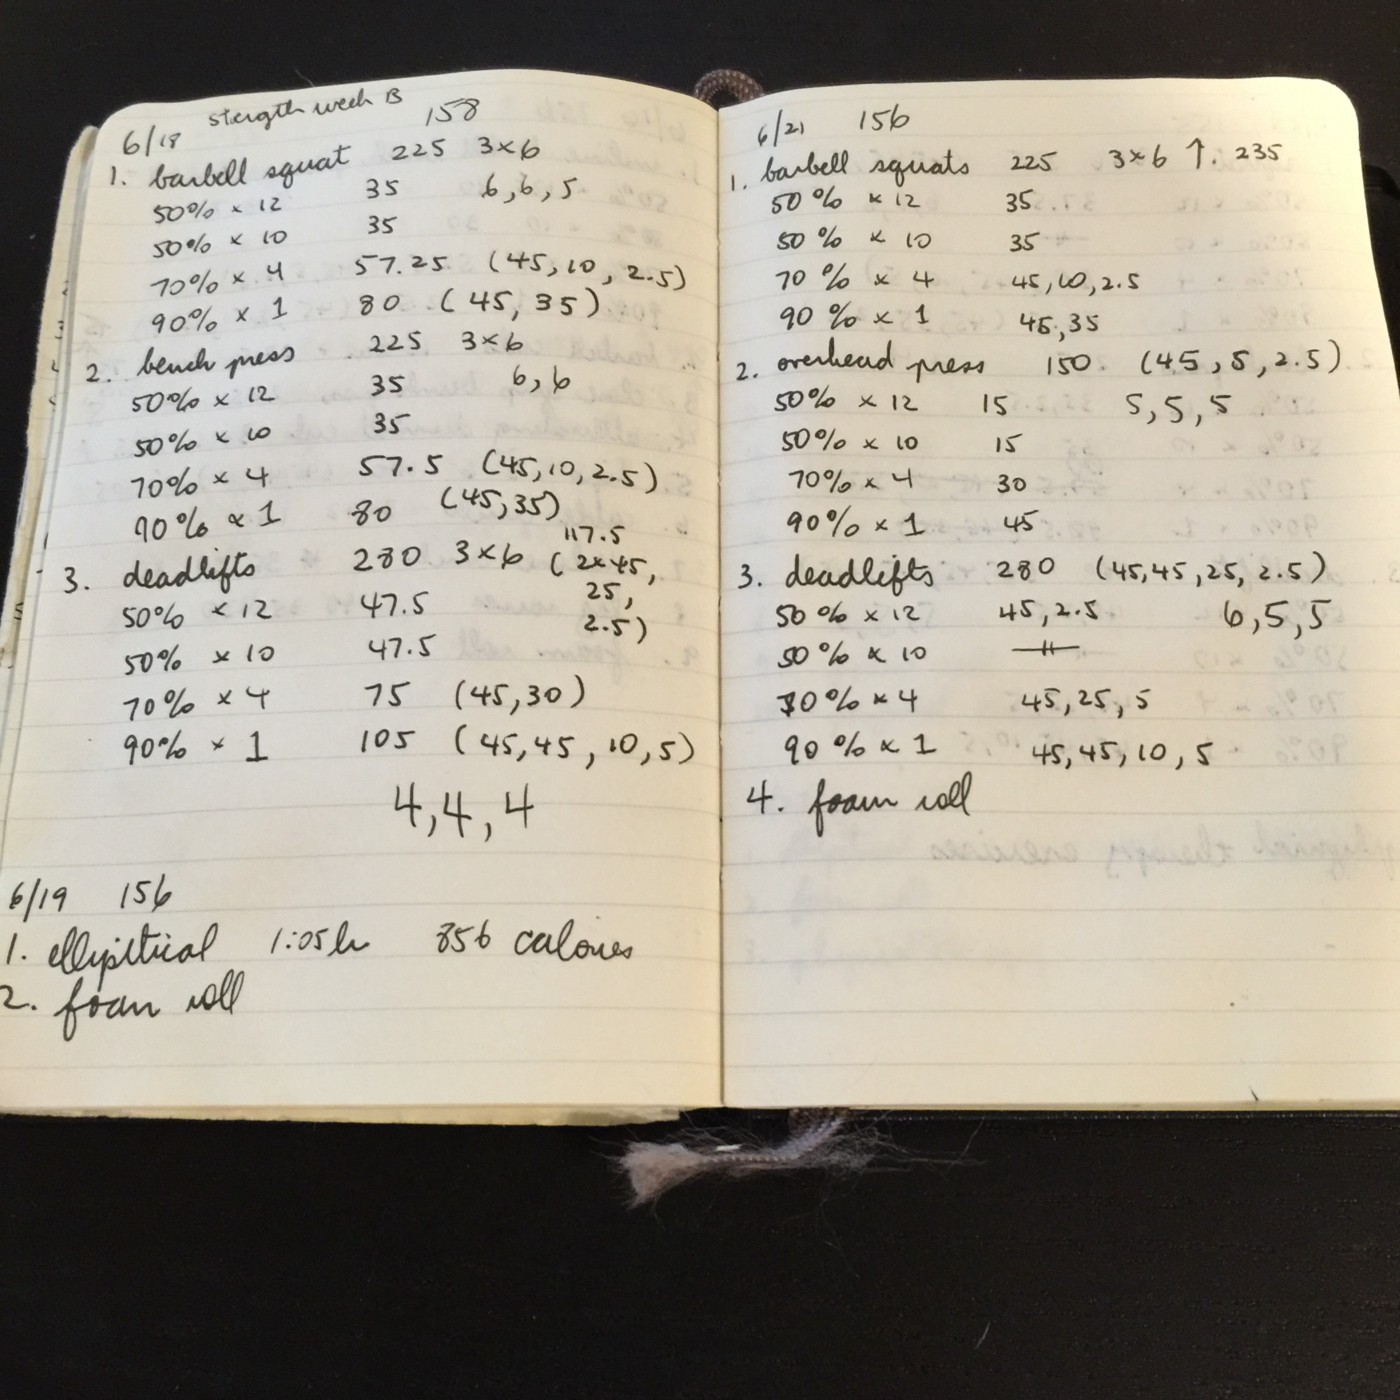 My 100 Day Personal Fitness Challenge